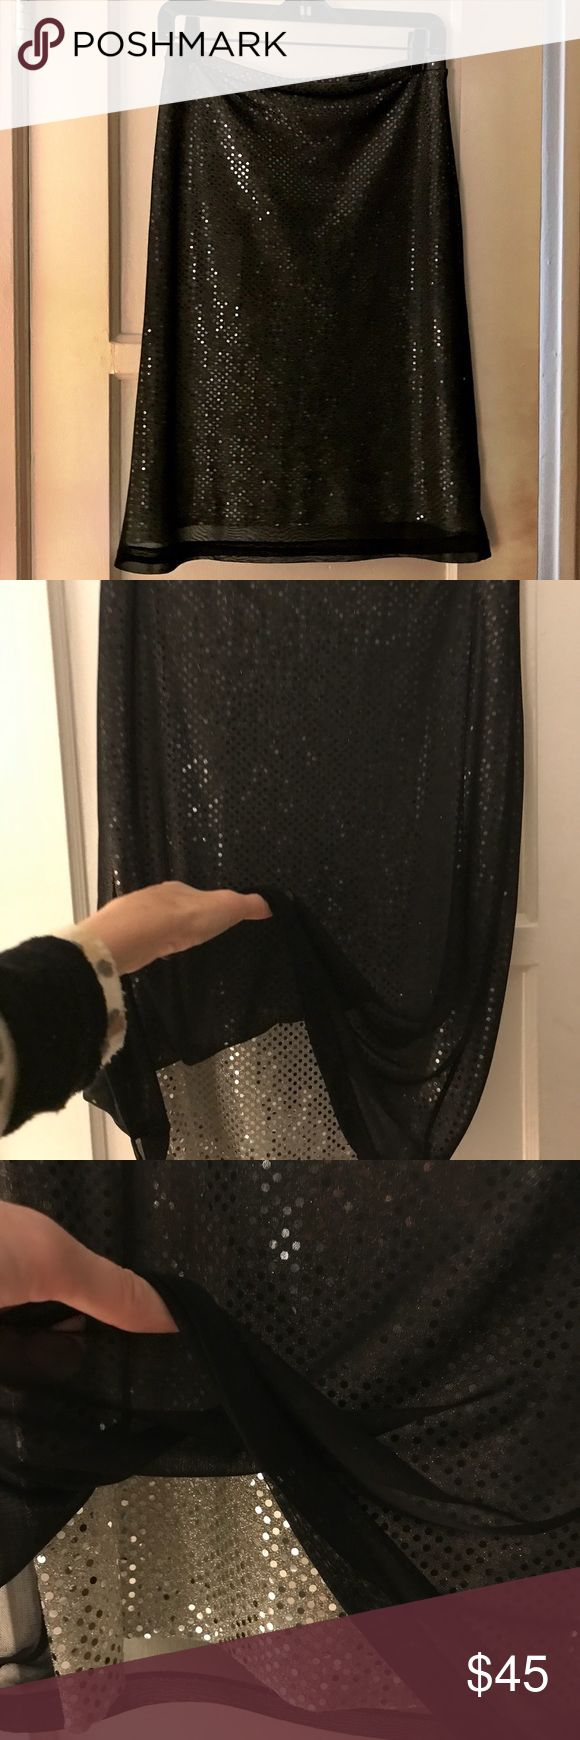 Express Sequin Pencil Skirt Gently Used.  Excellent Condition.   Double layered Pencil Skirt w a silver sequin layer under a sheer black layer to create a glamorous shimmering effect.   Comfortable with an elastic waist band.   Beautiful and flattering skirt that hits at the knee. Express Skirts Pencil